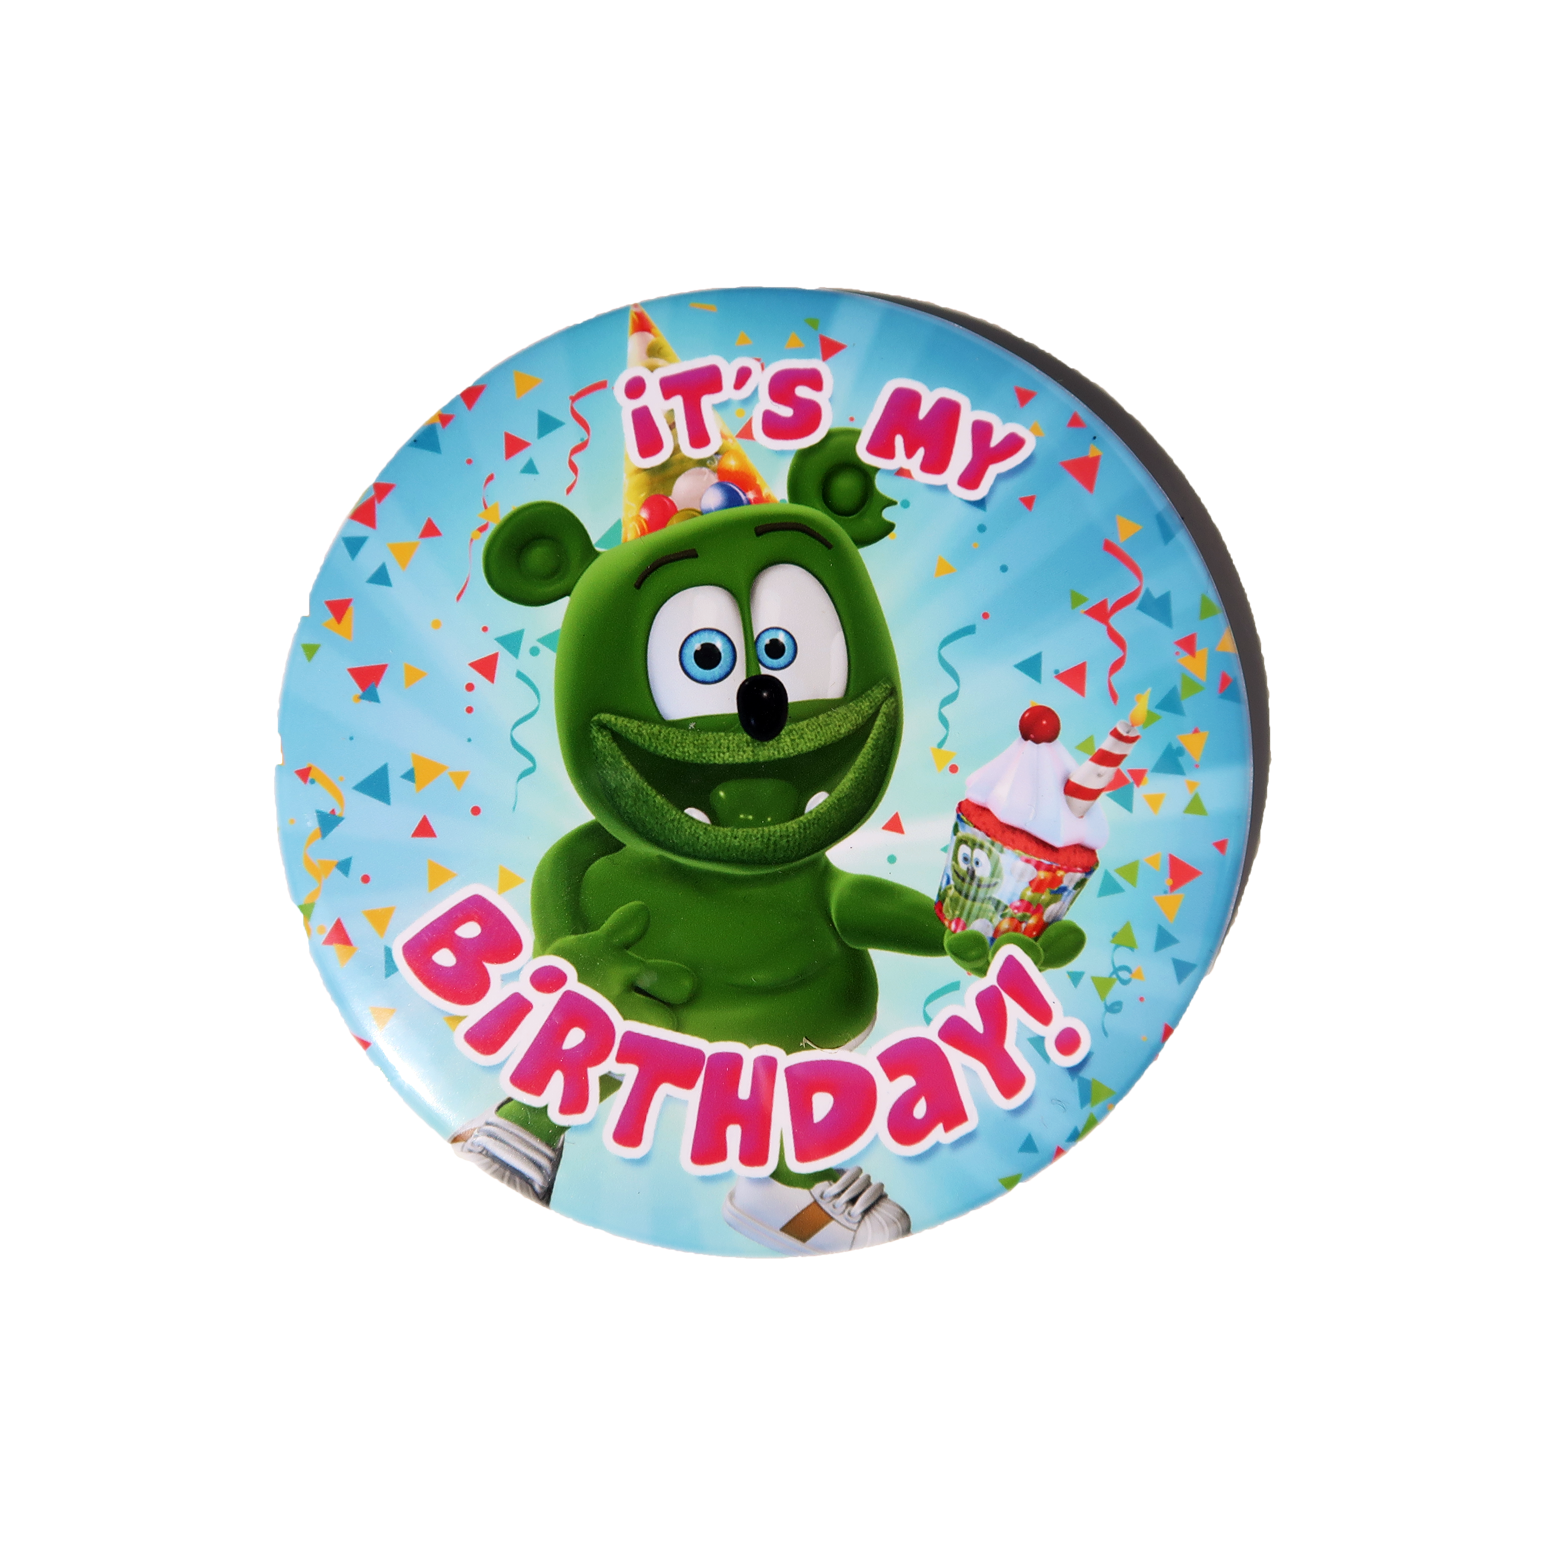 "Gummibär (The Gummy Bear) It's My Birthday! 3"" Pinback Button"